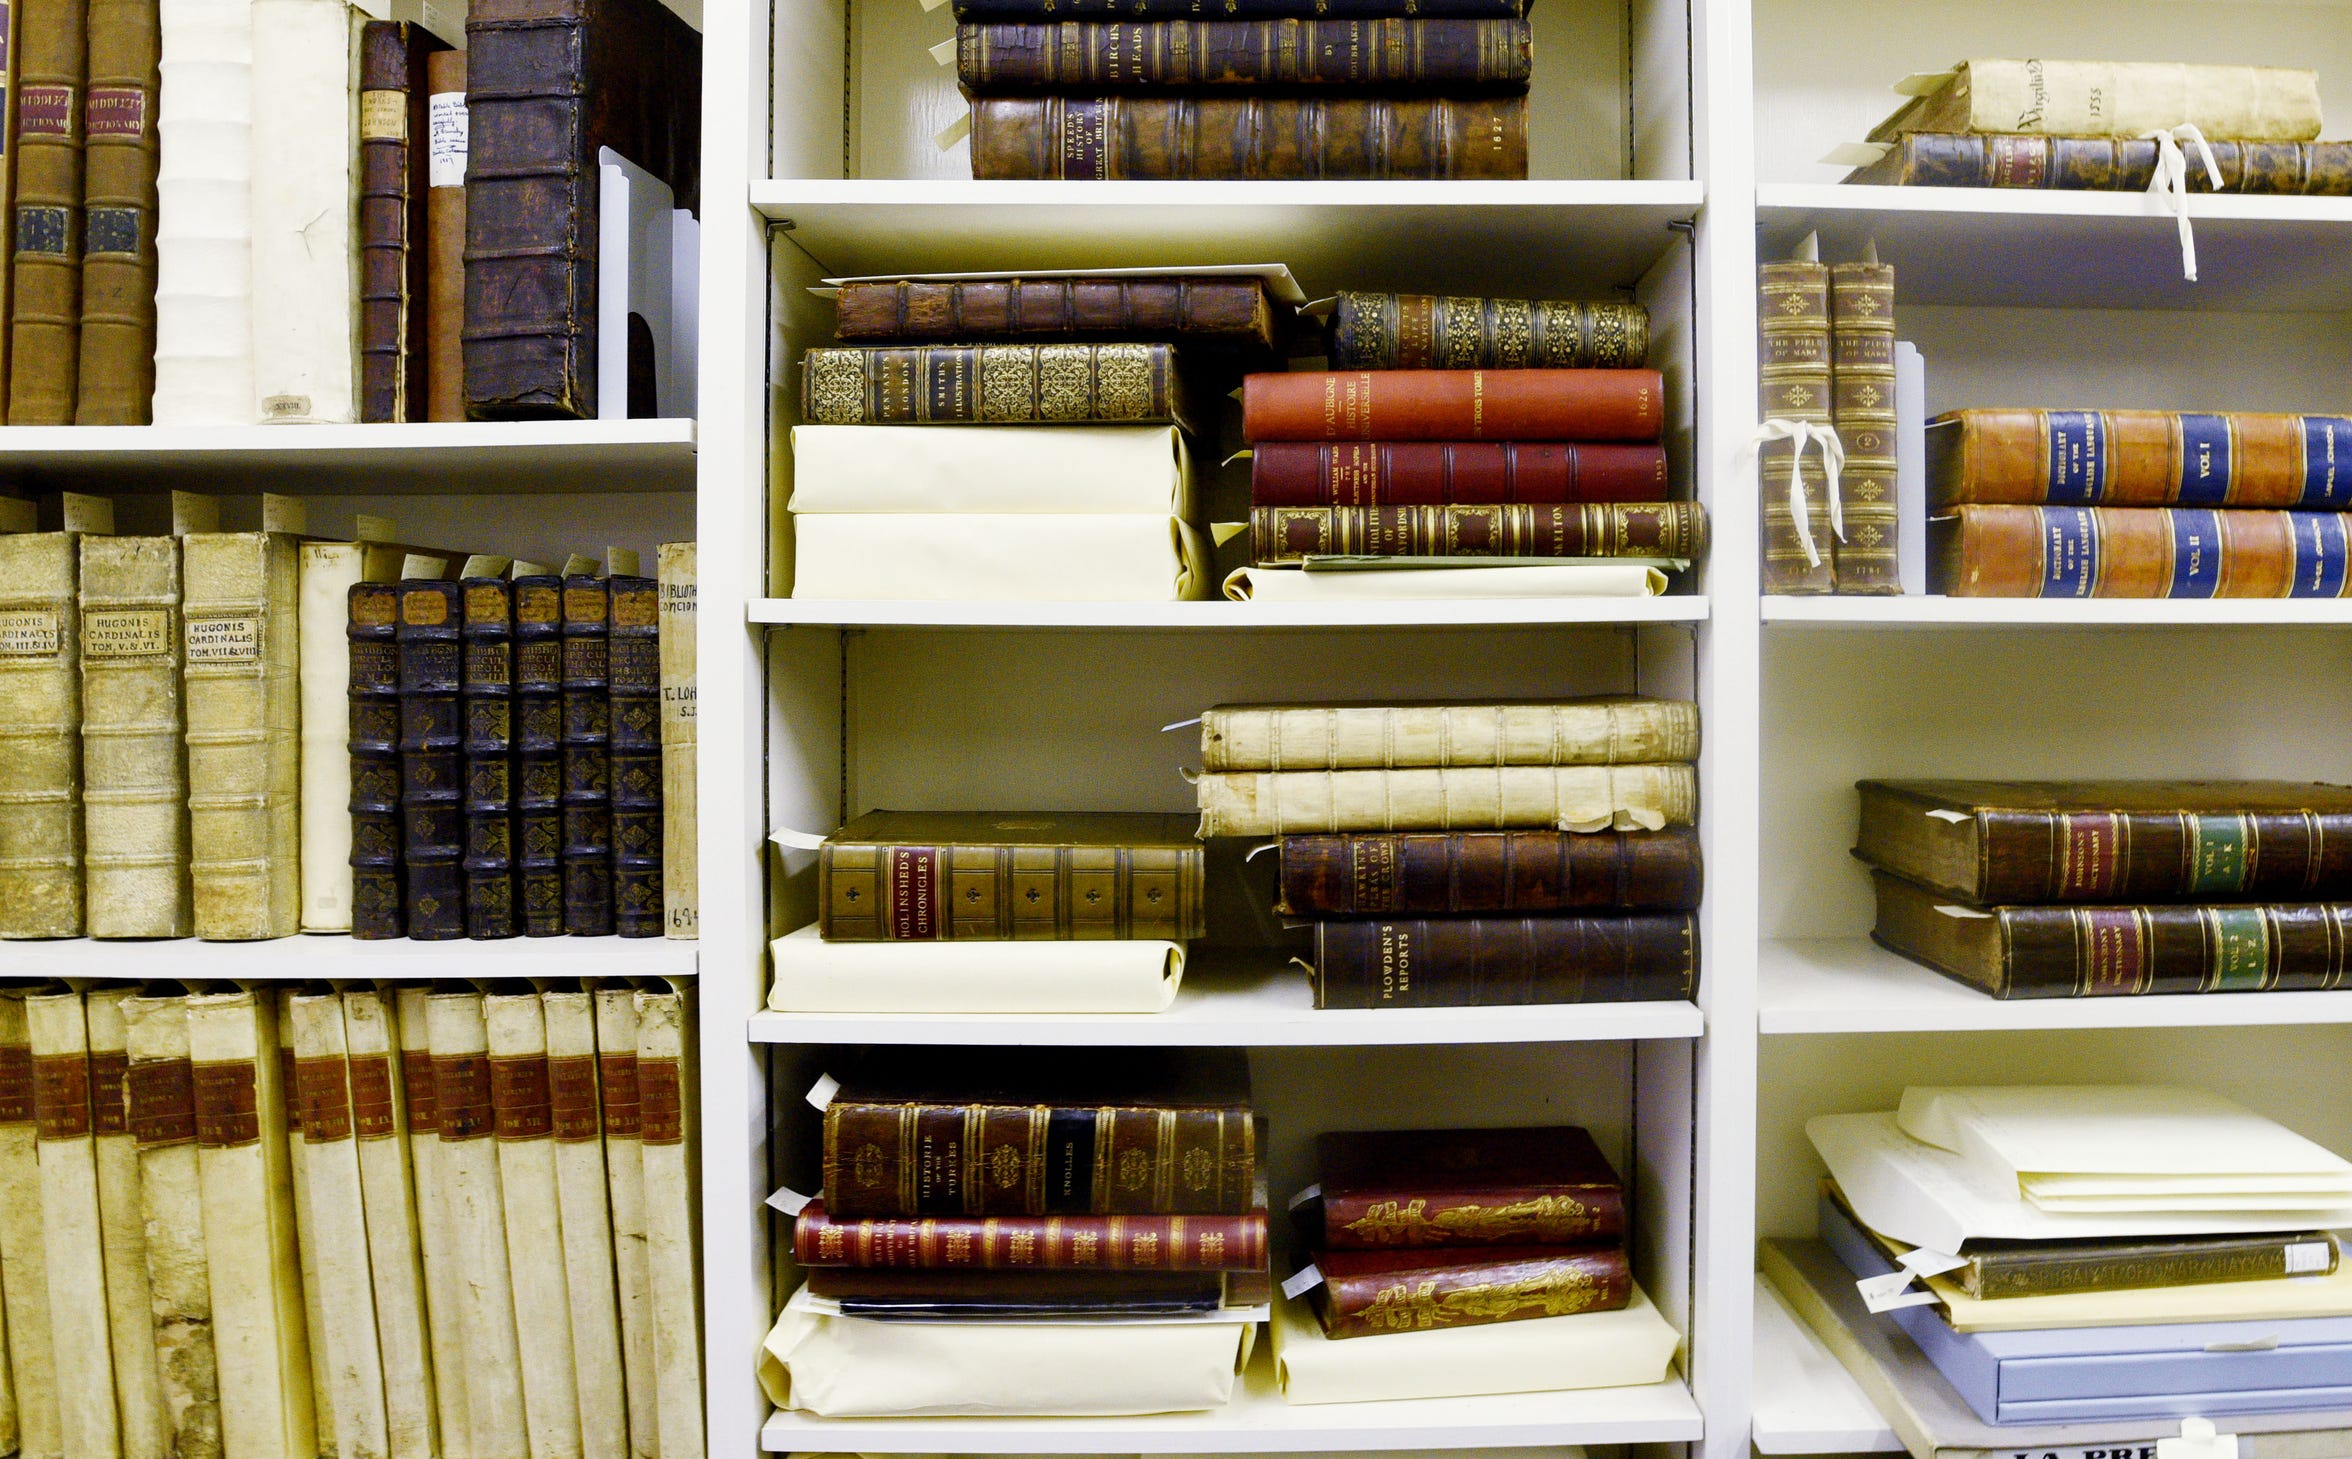 The oldest and most rare books at Noel Memorial Library's rare book collection stay in the vault.